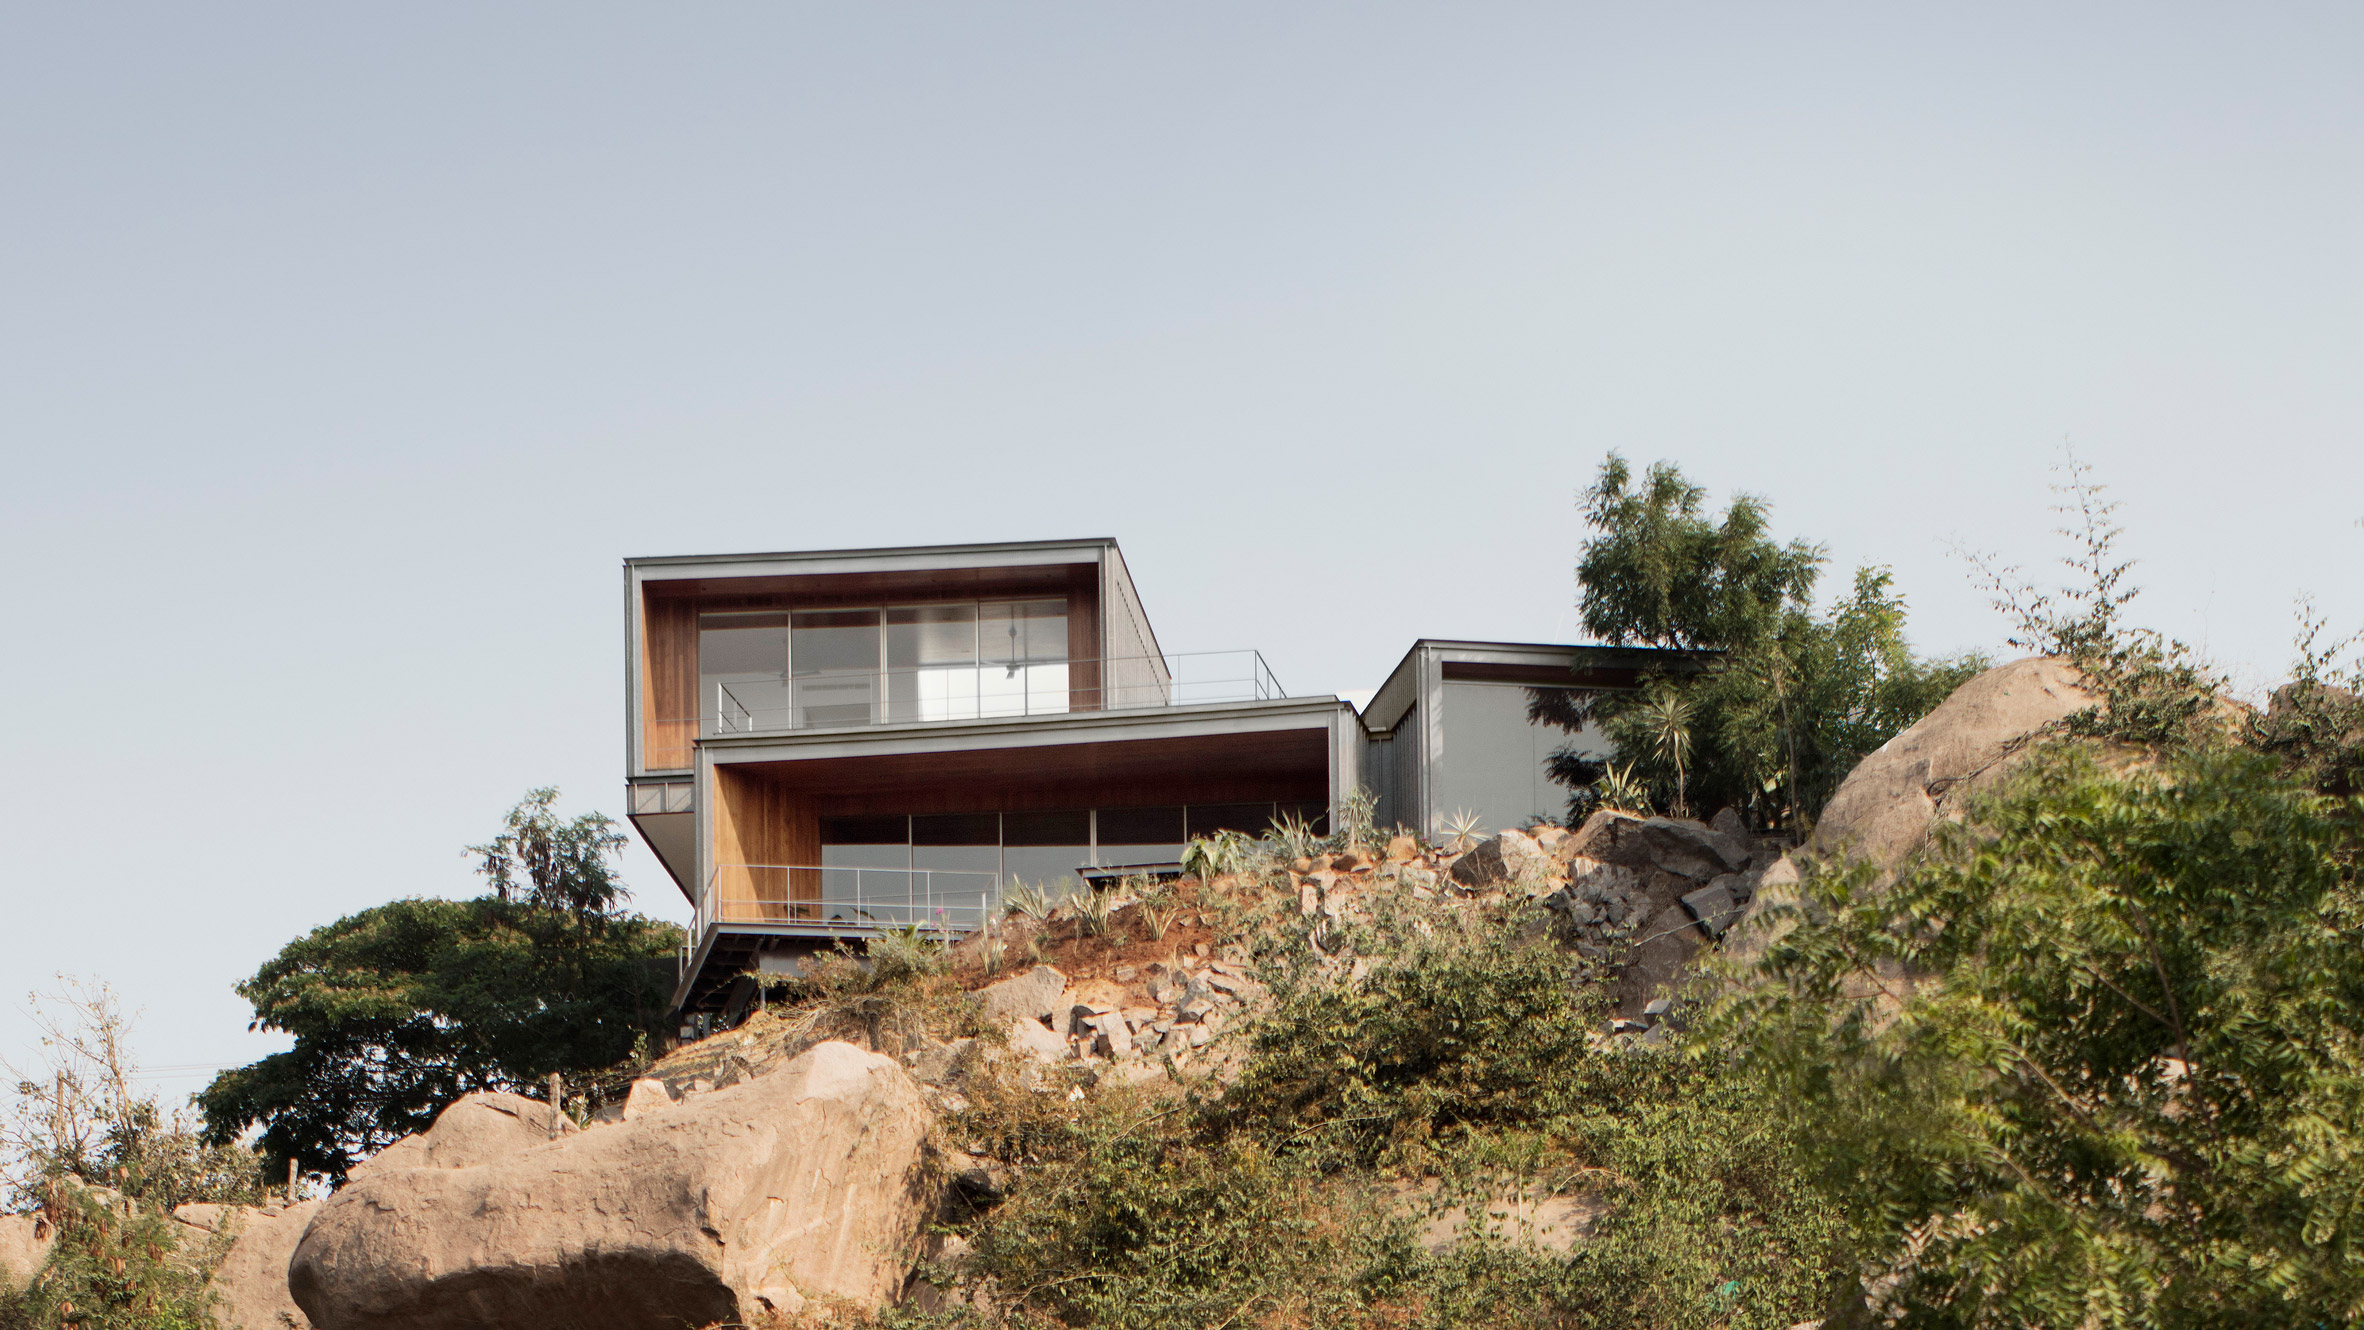 Lakehouse is formed of granite boxes on a clifftop in India